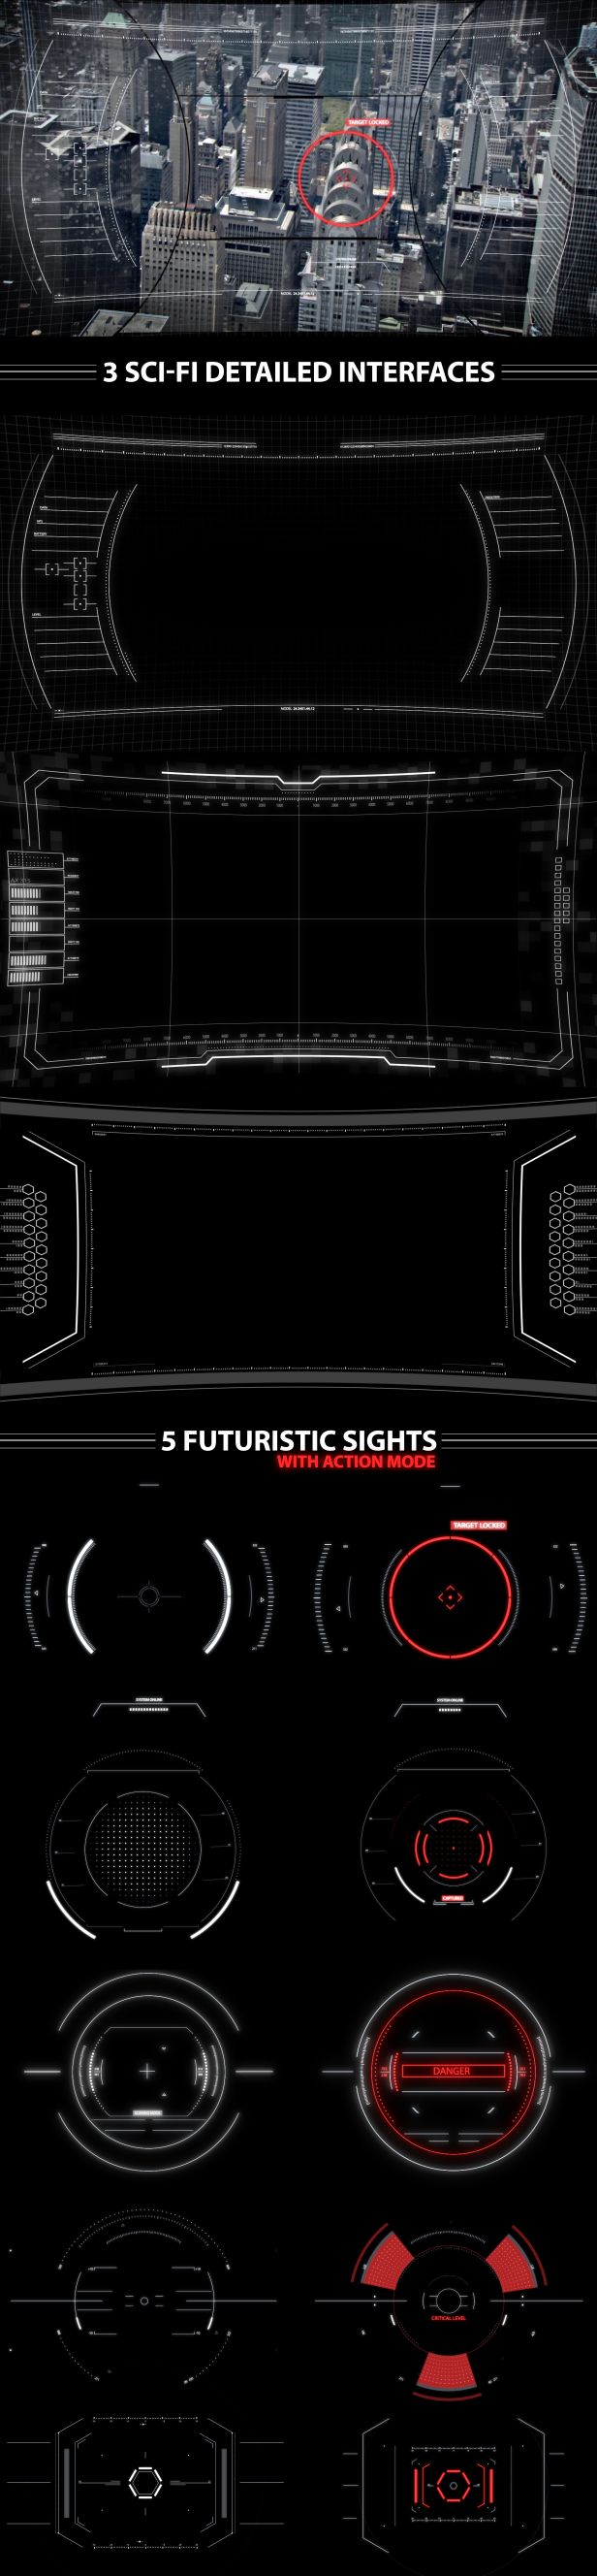 After Effects Project Files - Sci-fi Interfaces and Sights pack | VideoHive